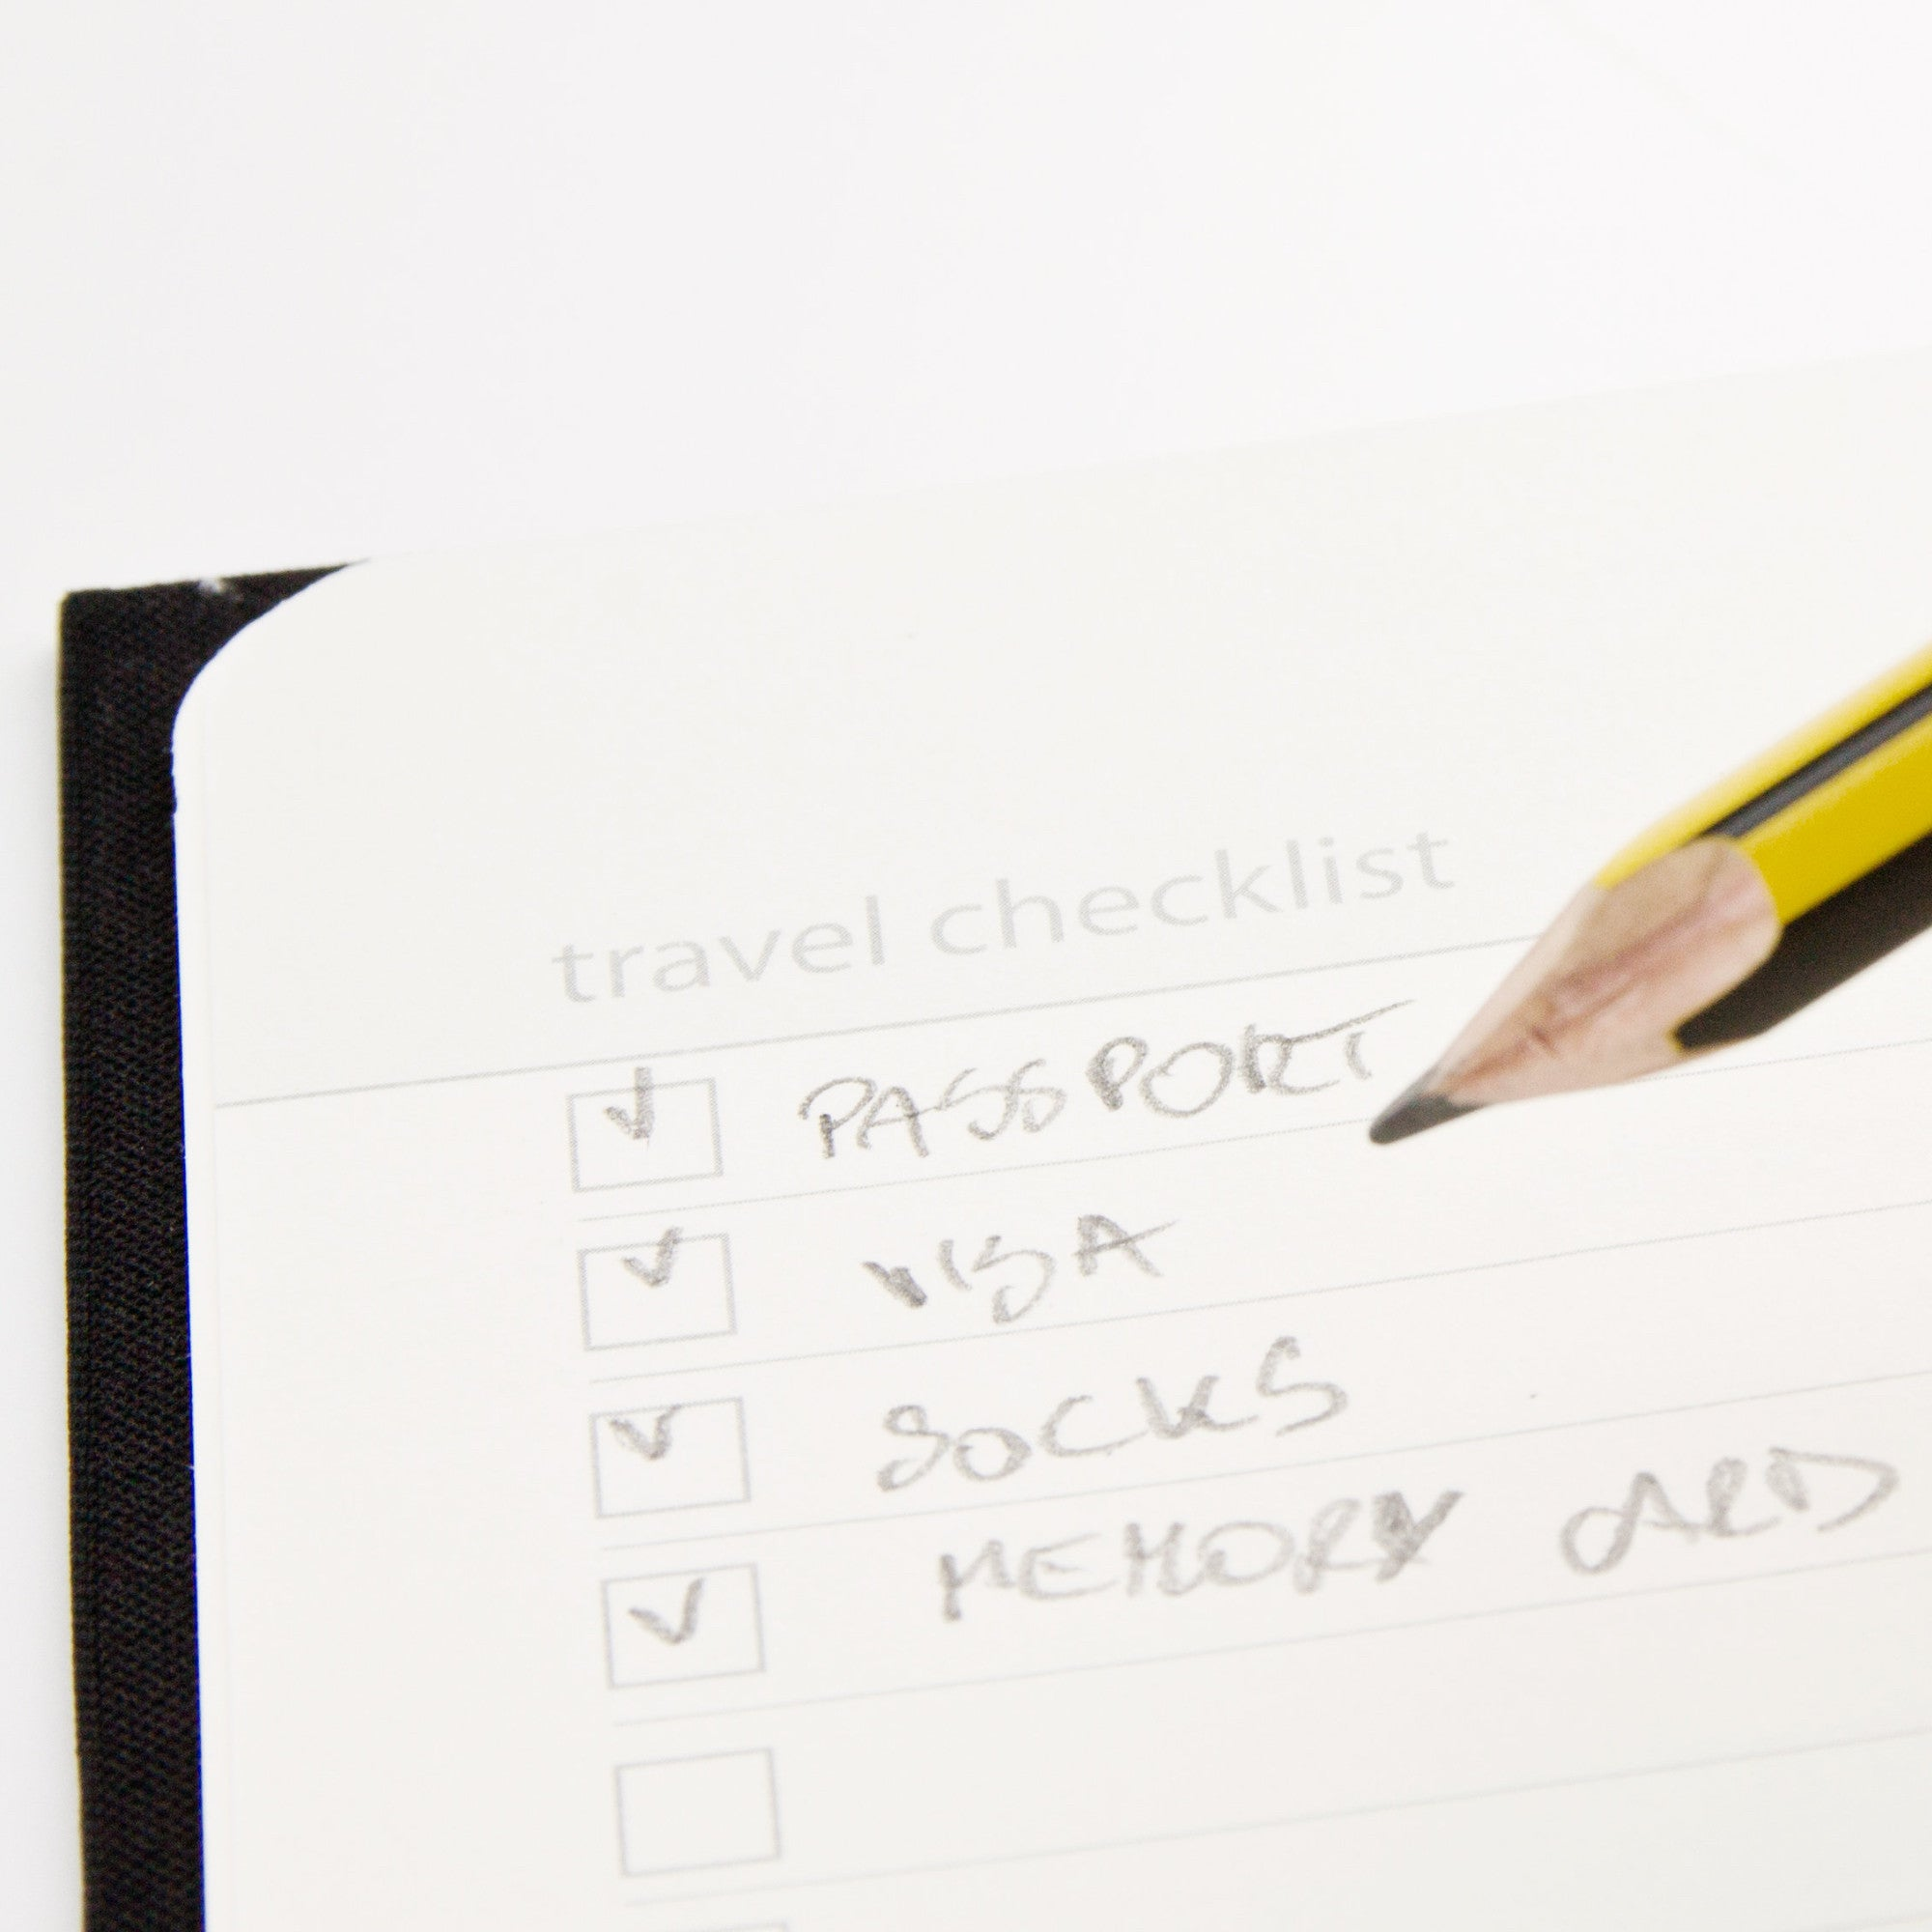 My travel journal checklist